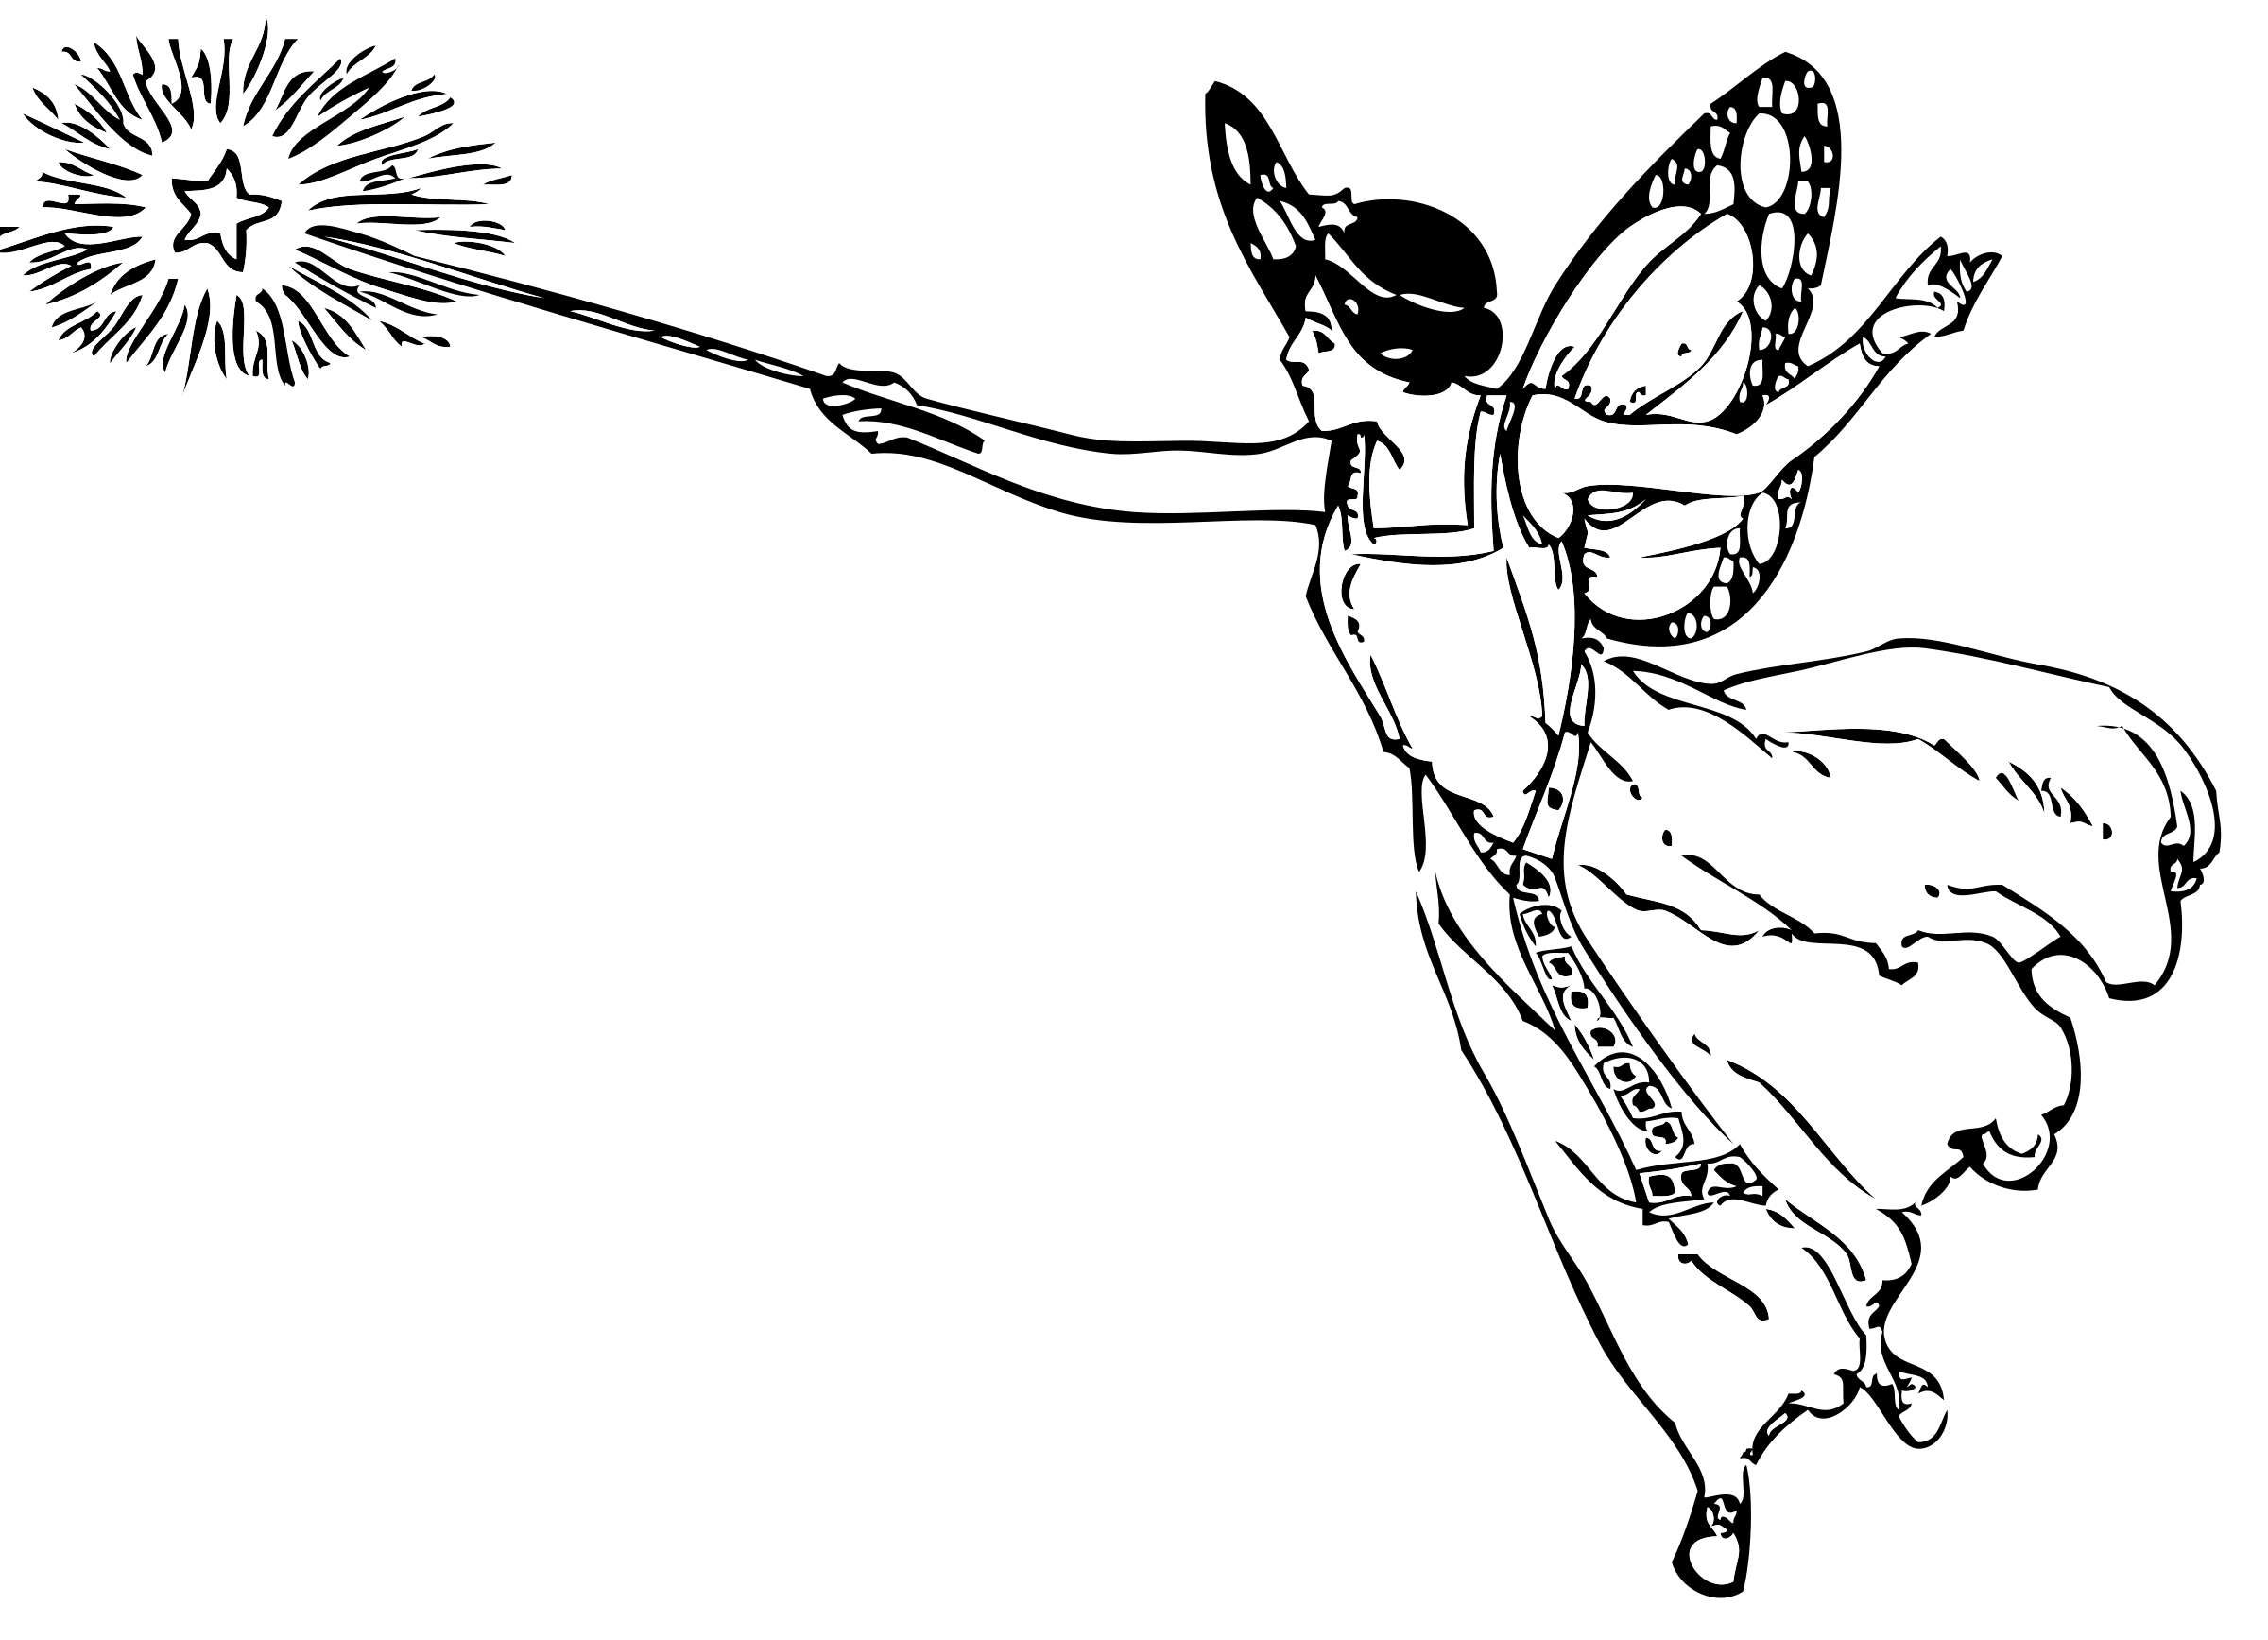 Fairy With Wand by FunDraw_dot_com